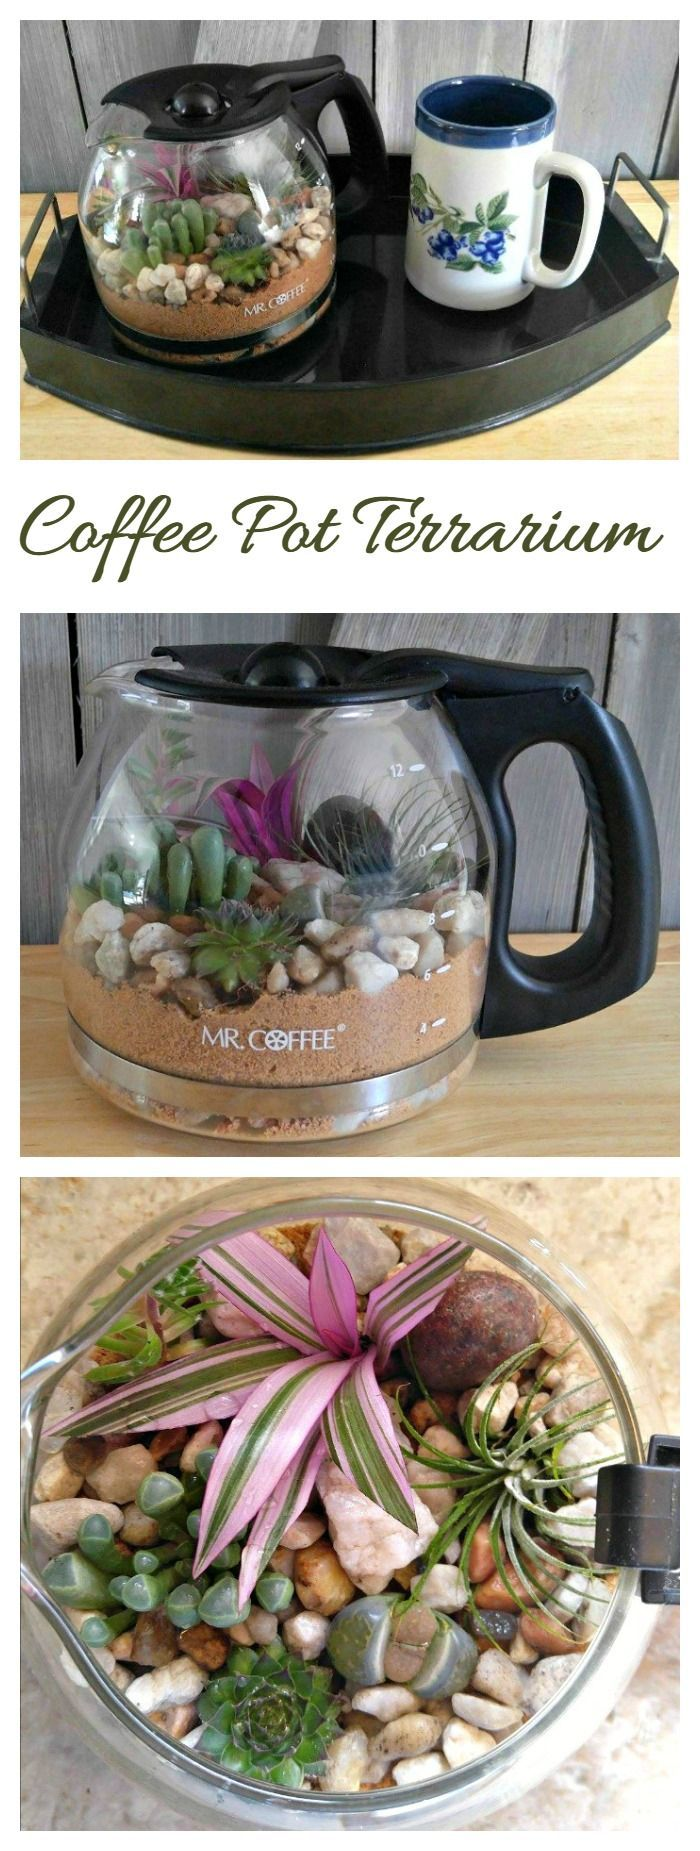 This Coffee pot Terrarium is a fun way to add some pretty plant decor. It keeps the humidity level right so that watering is not needed very often.